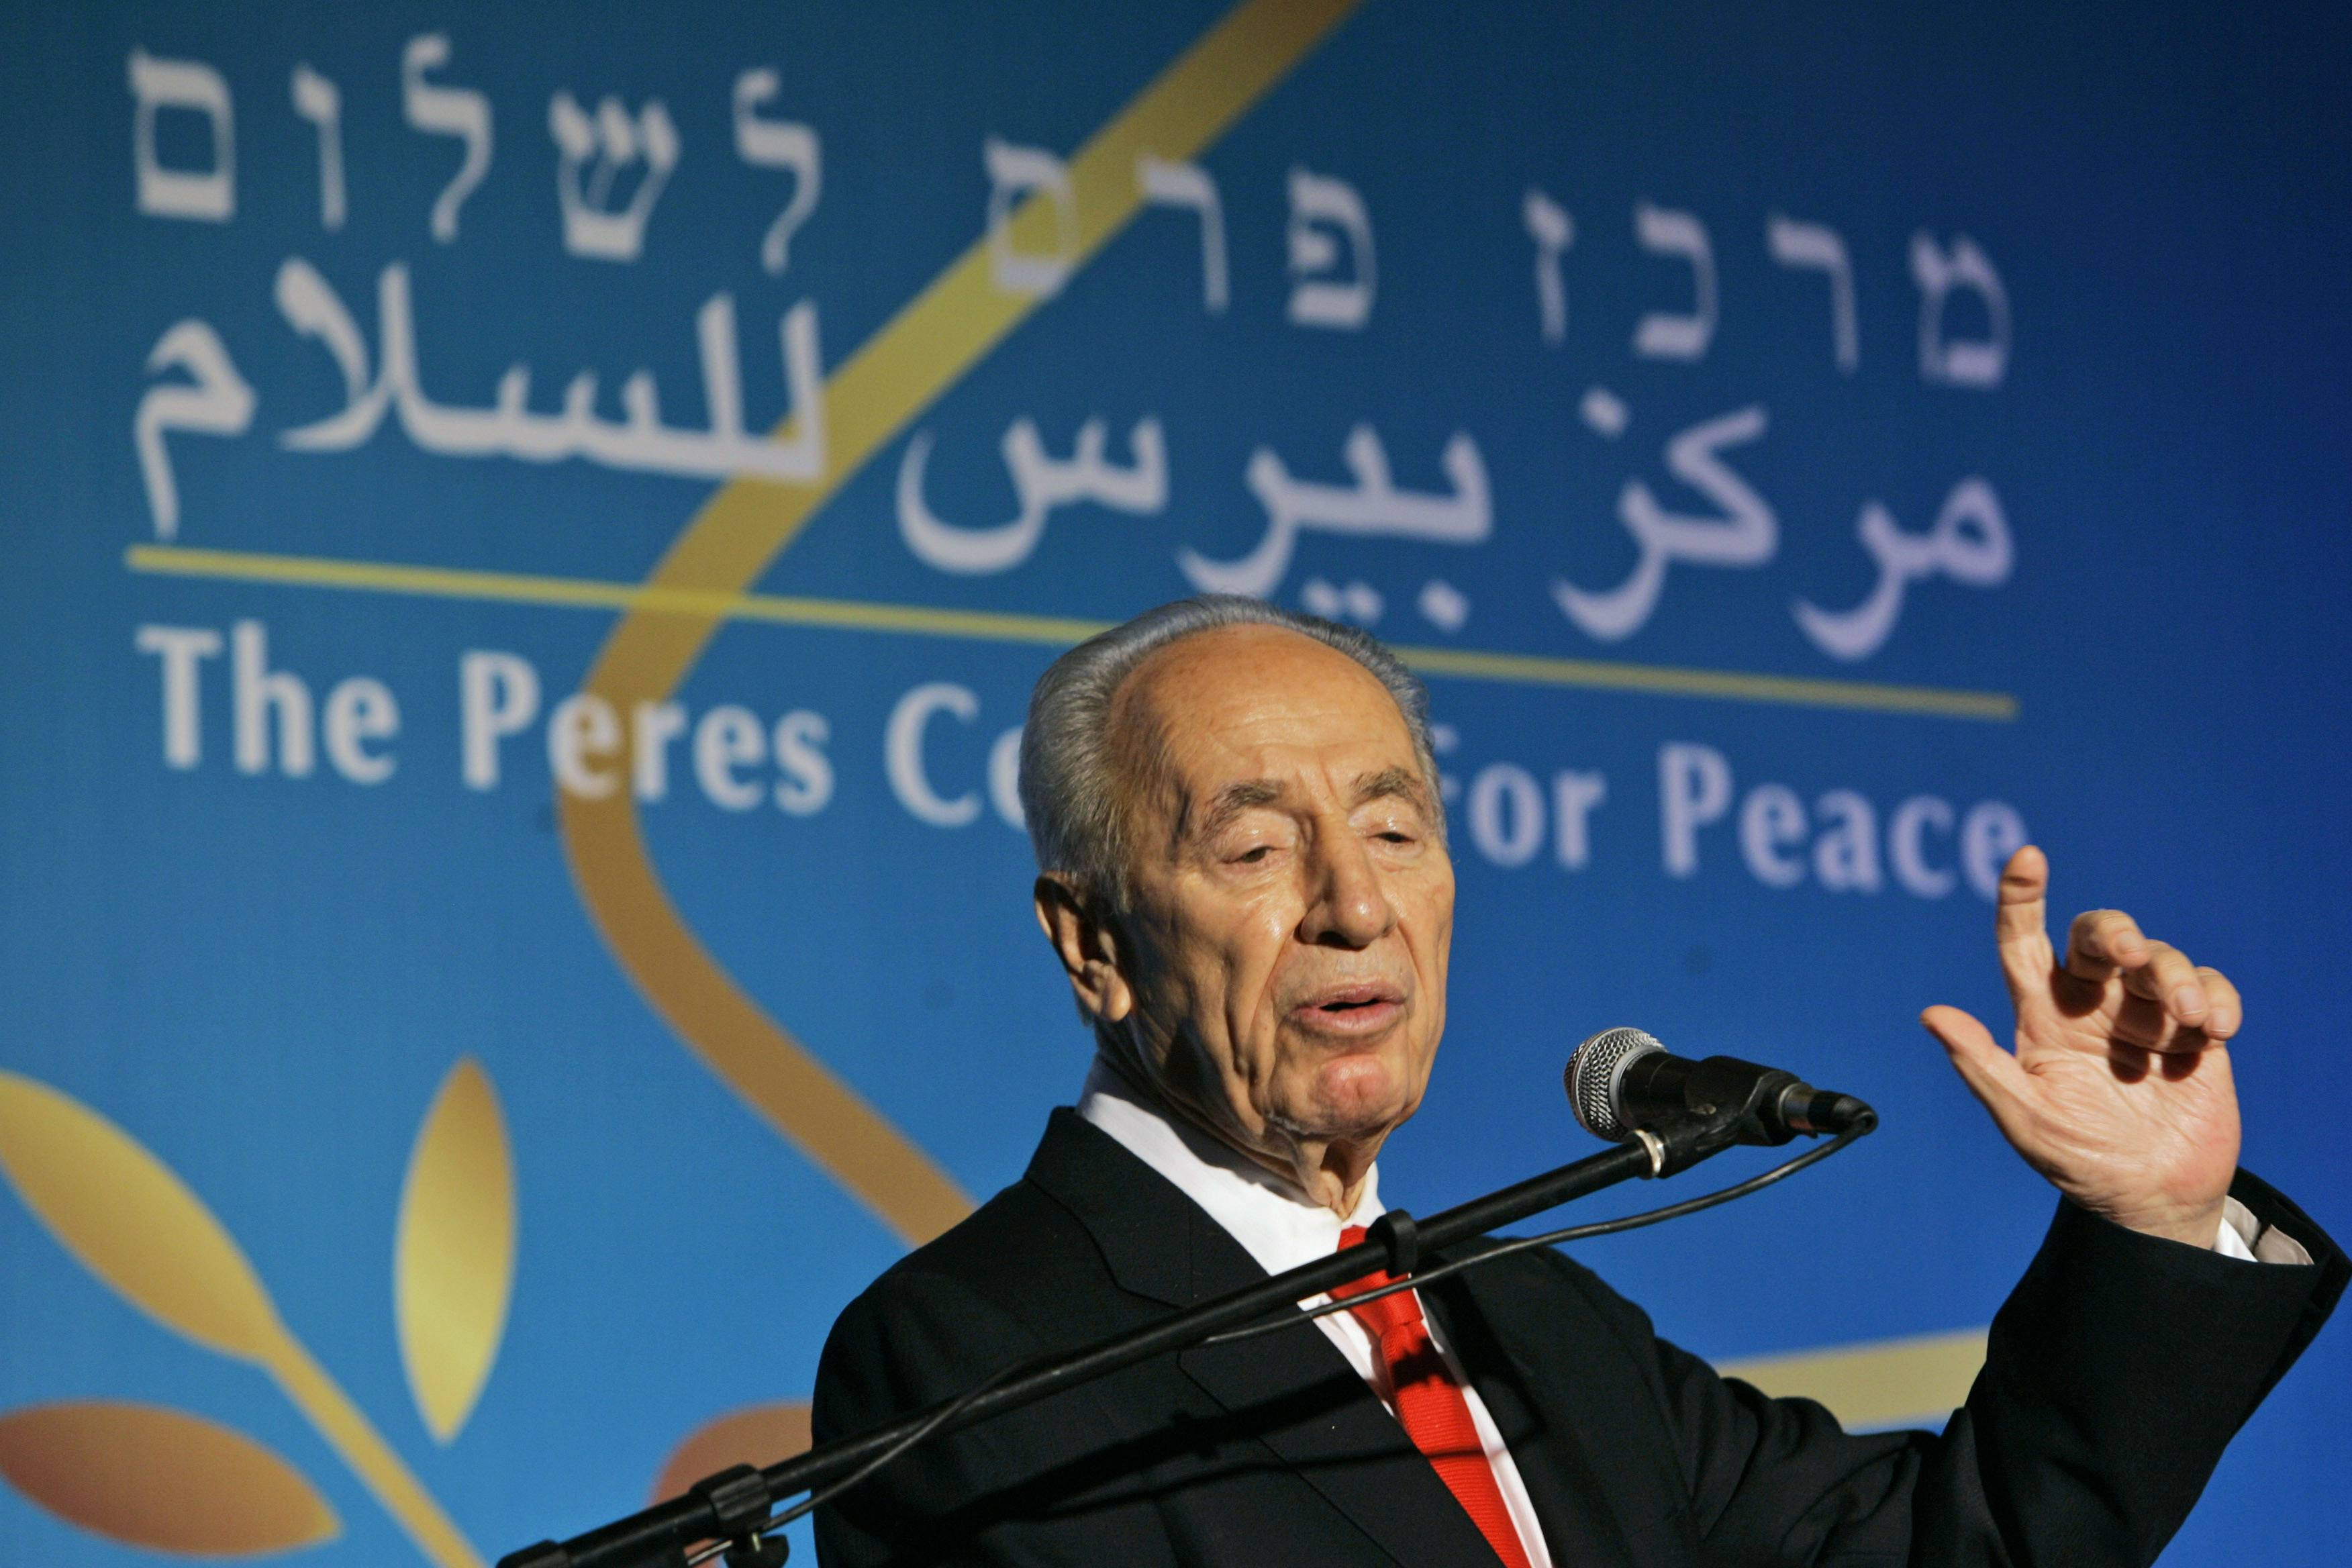 In this Oct. 28, 2008, file photo, Israeli President Shimon Peres speaks during the 10th anniversary celebration of the Peres Center for Peace in Tel Aviv, Israel.